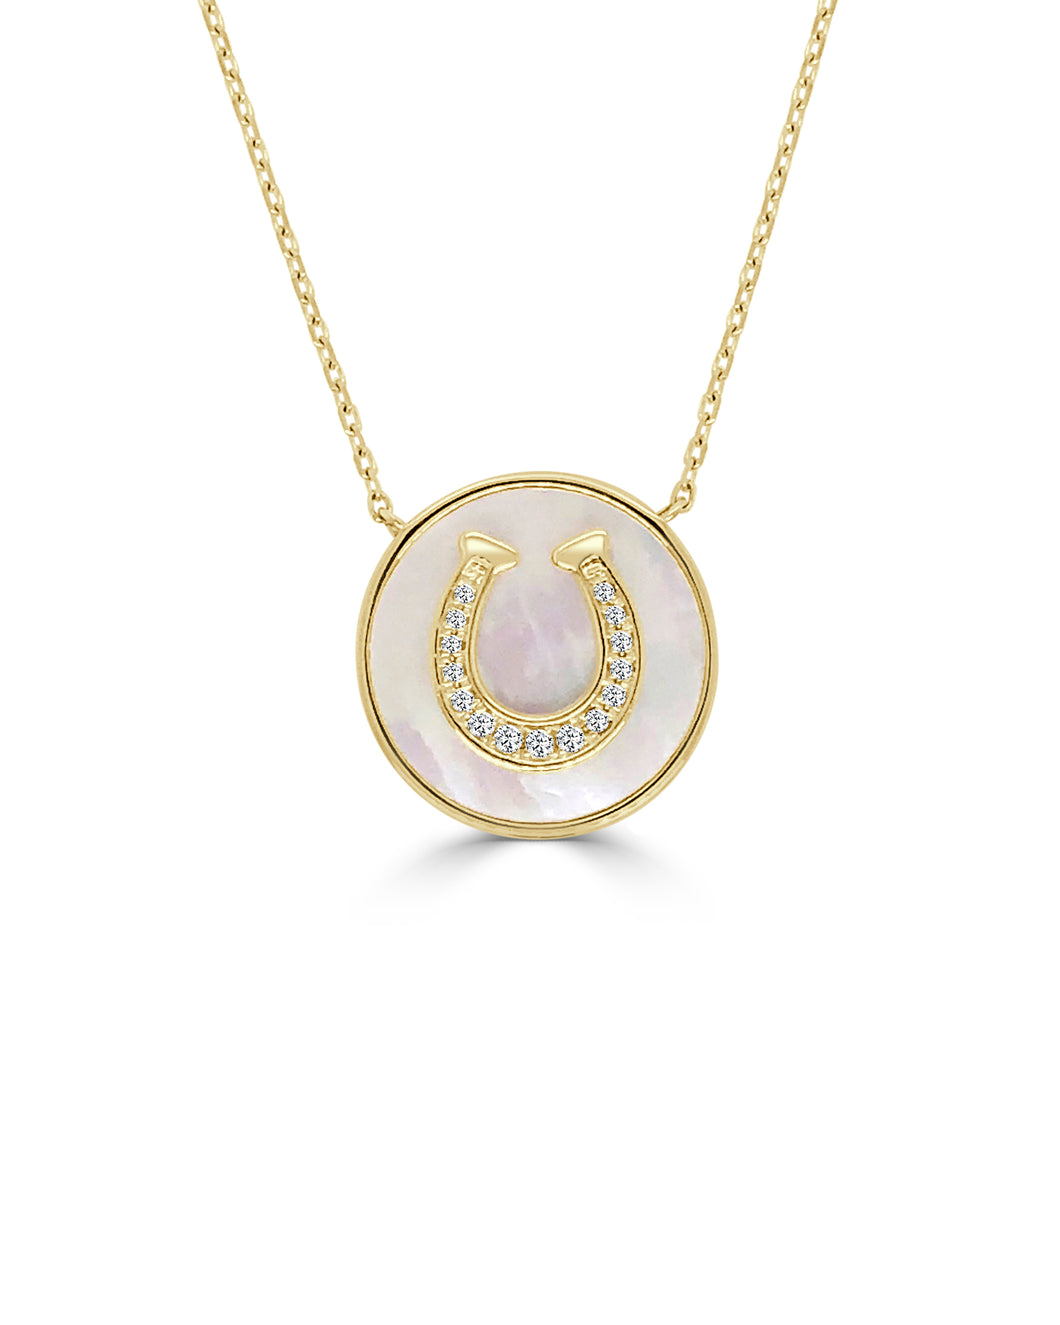 Horse Shoe Necklace w/ Diamonds and Mother of Pearl - Yellow Gold